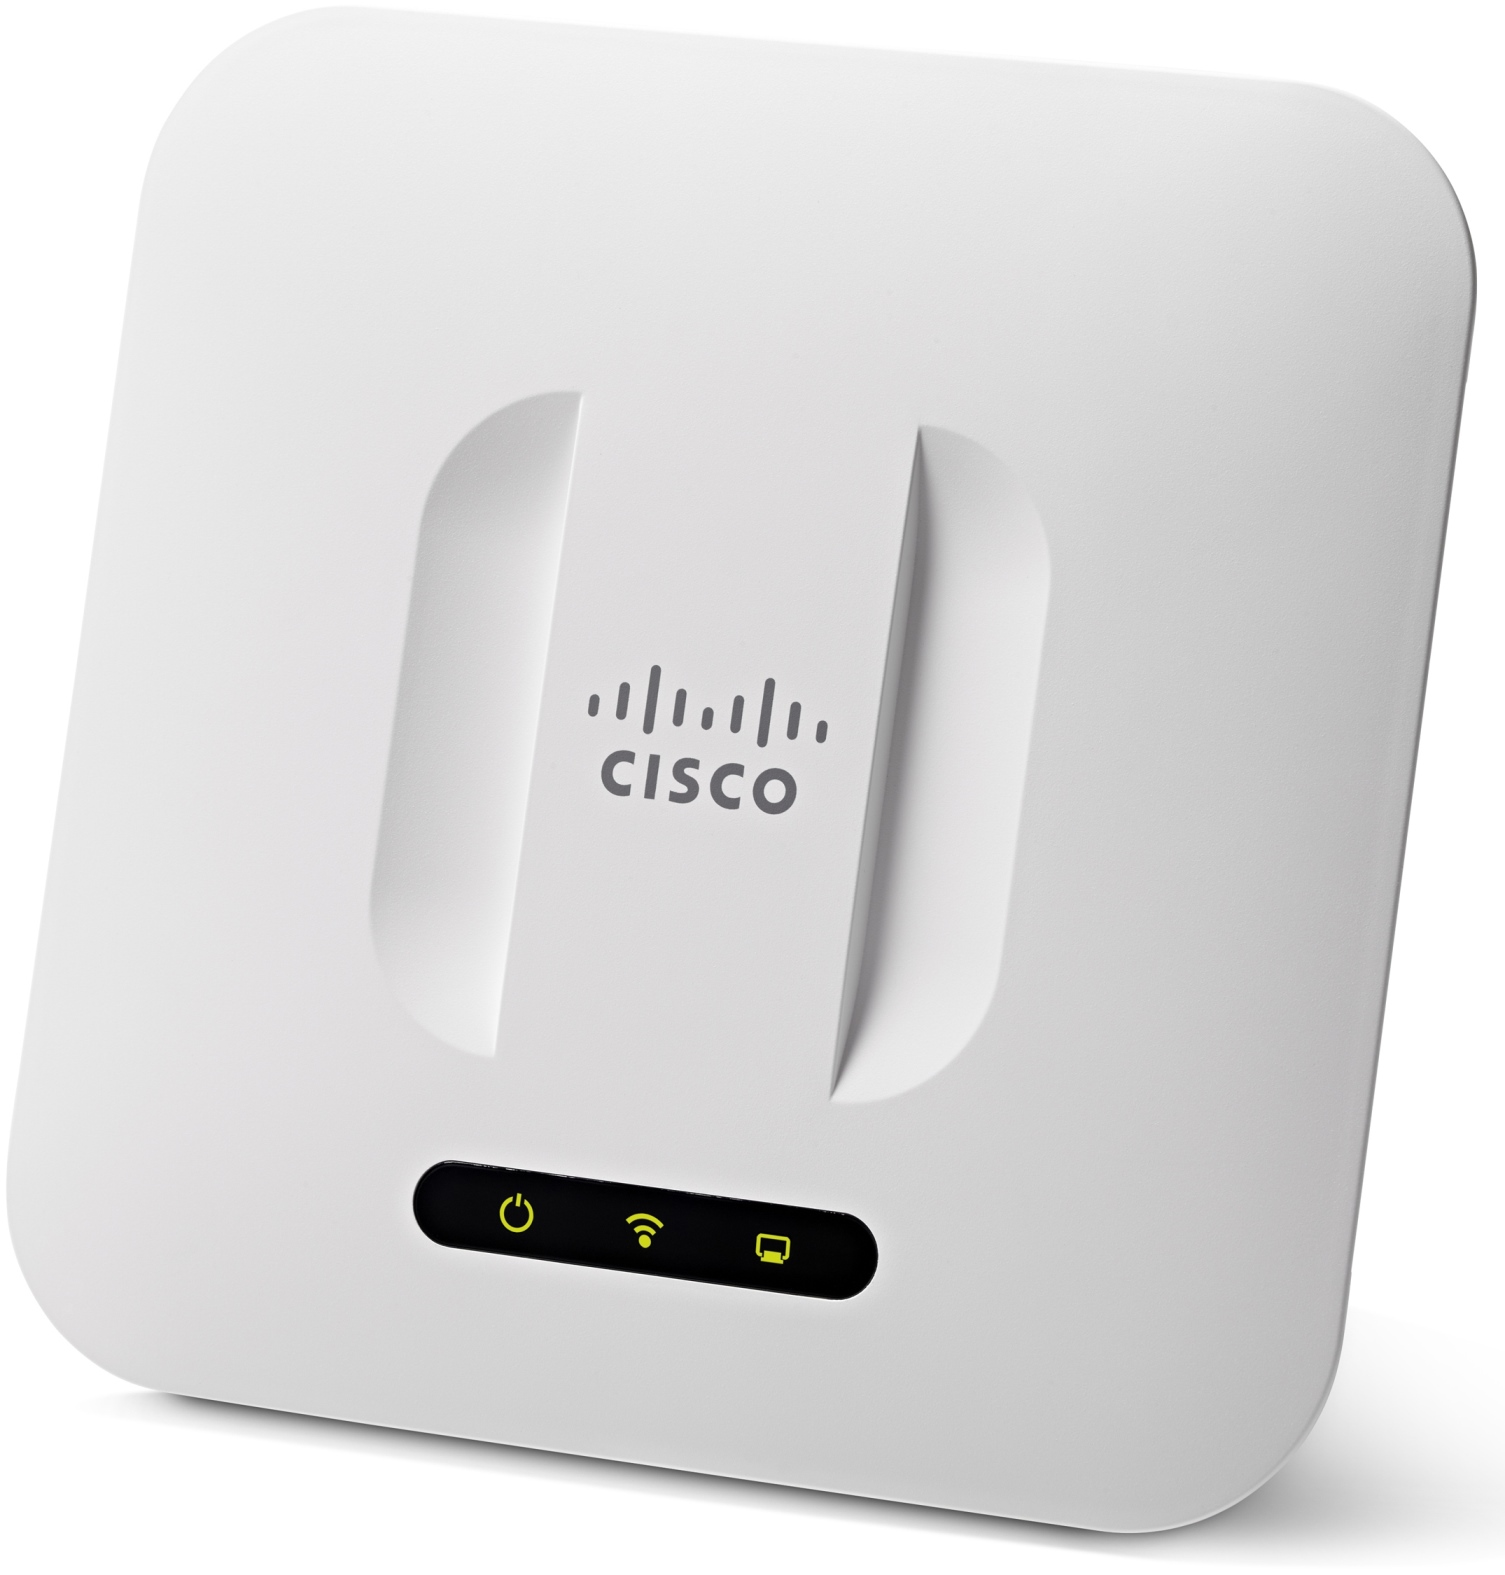 Cisco WiFi AP Dual Radio, 802.11, PoE, WAP351-E-K9